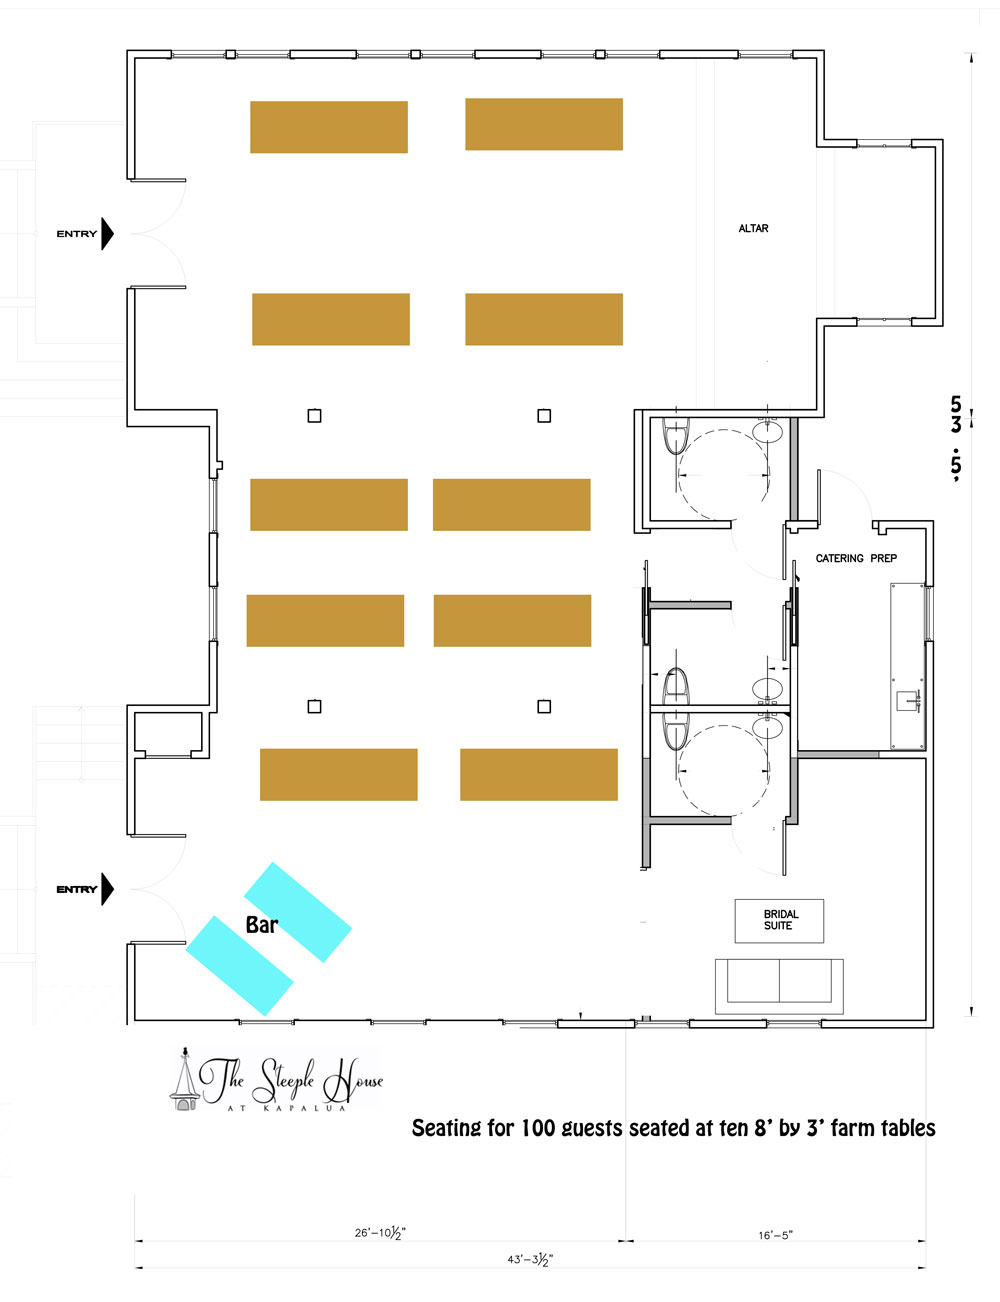 The-Steeple-House-Floor-Plan-100-ppl-farm-tables_edited-2.jpg